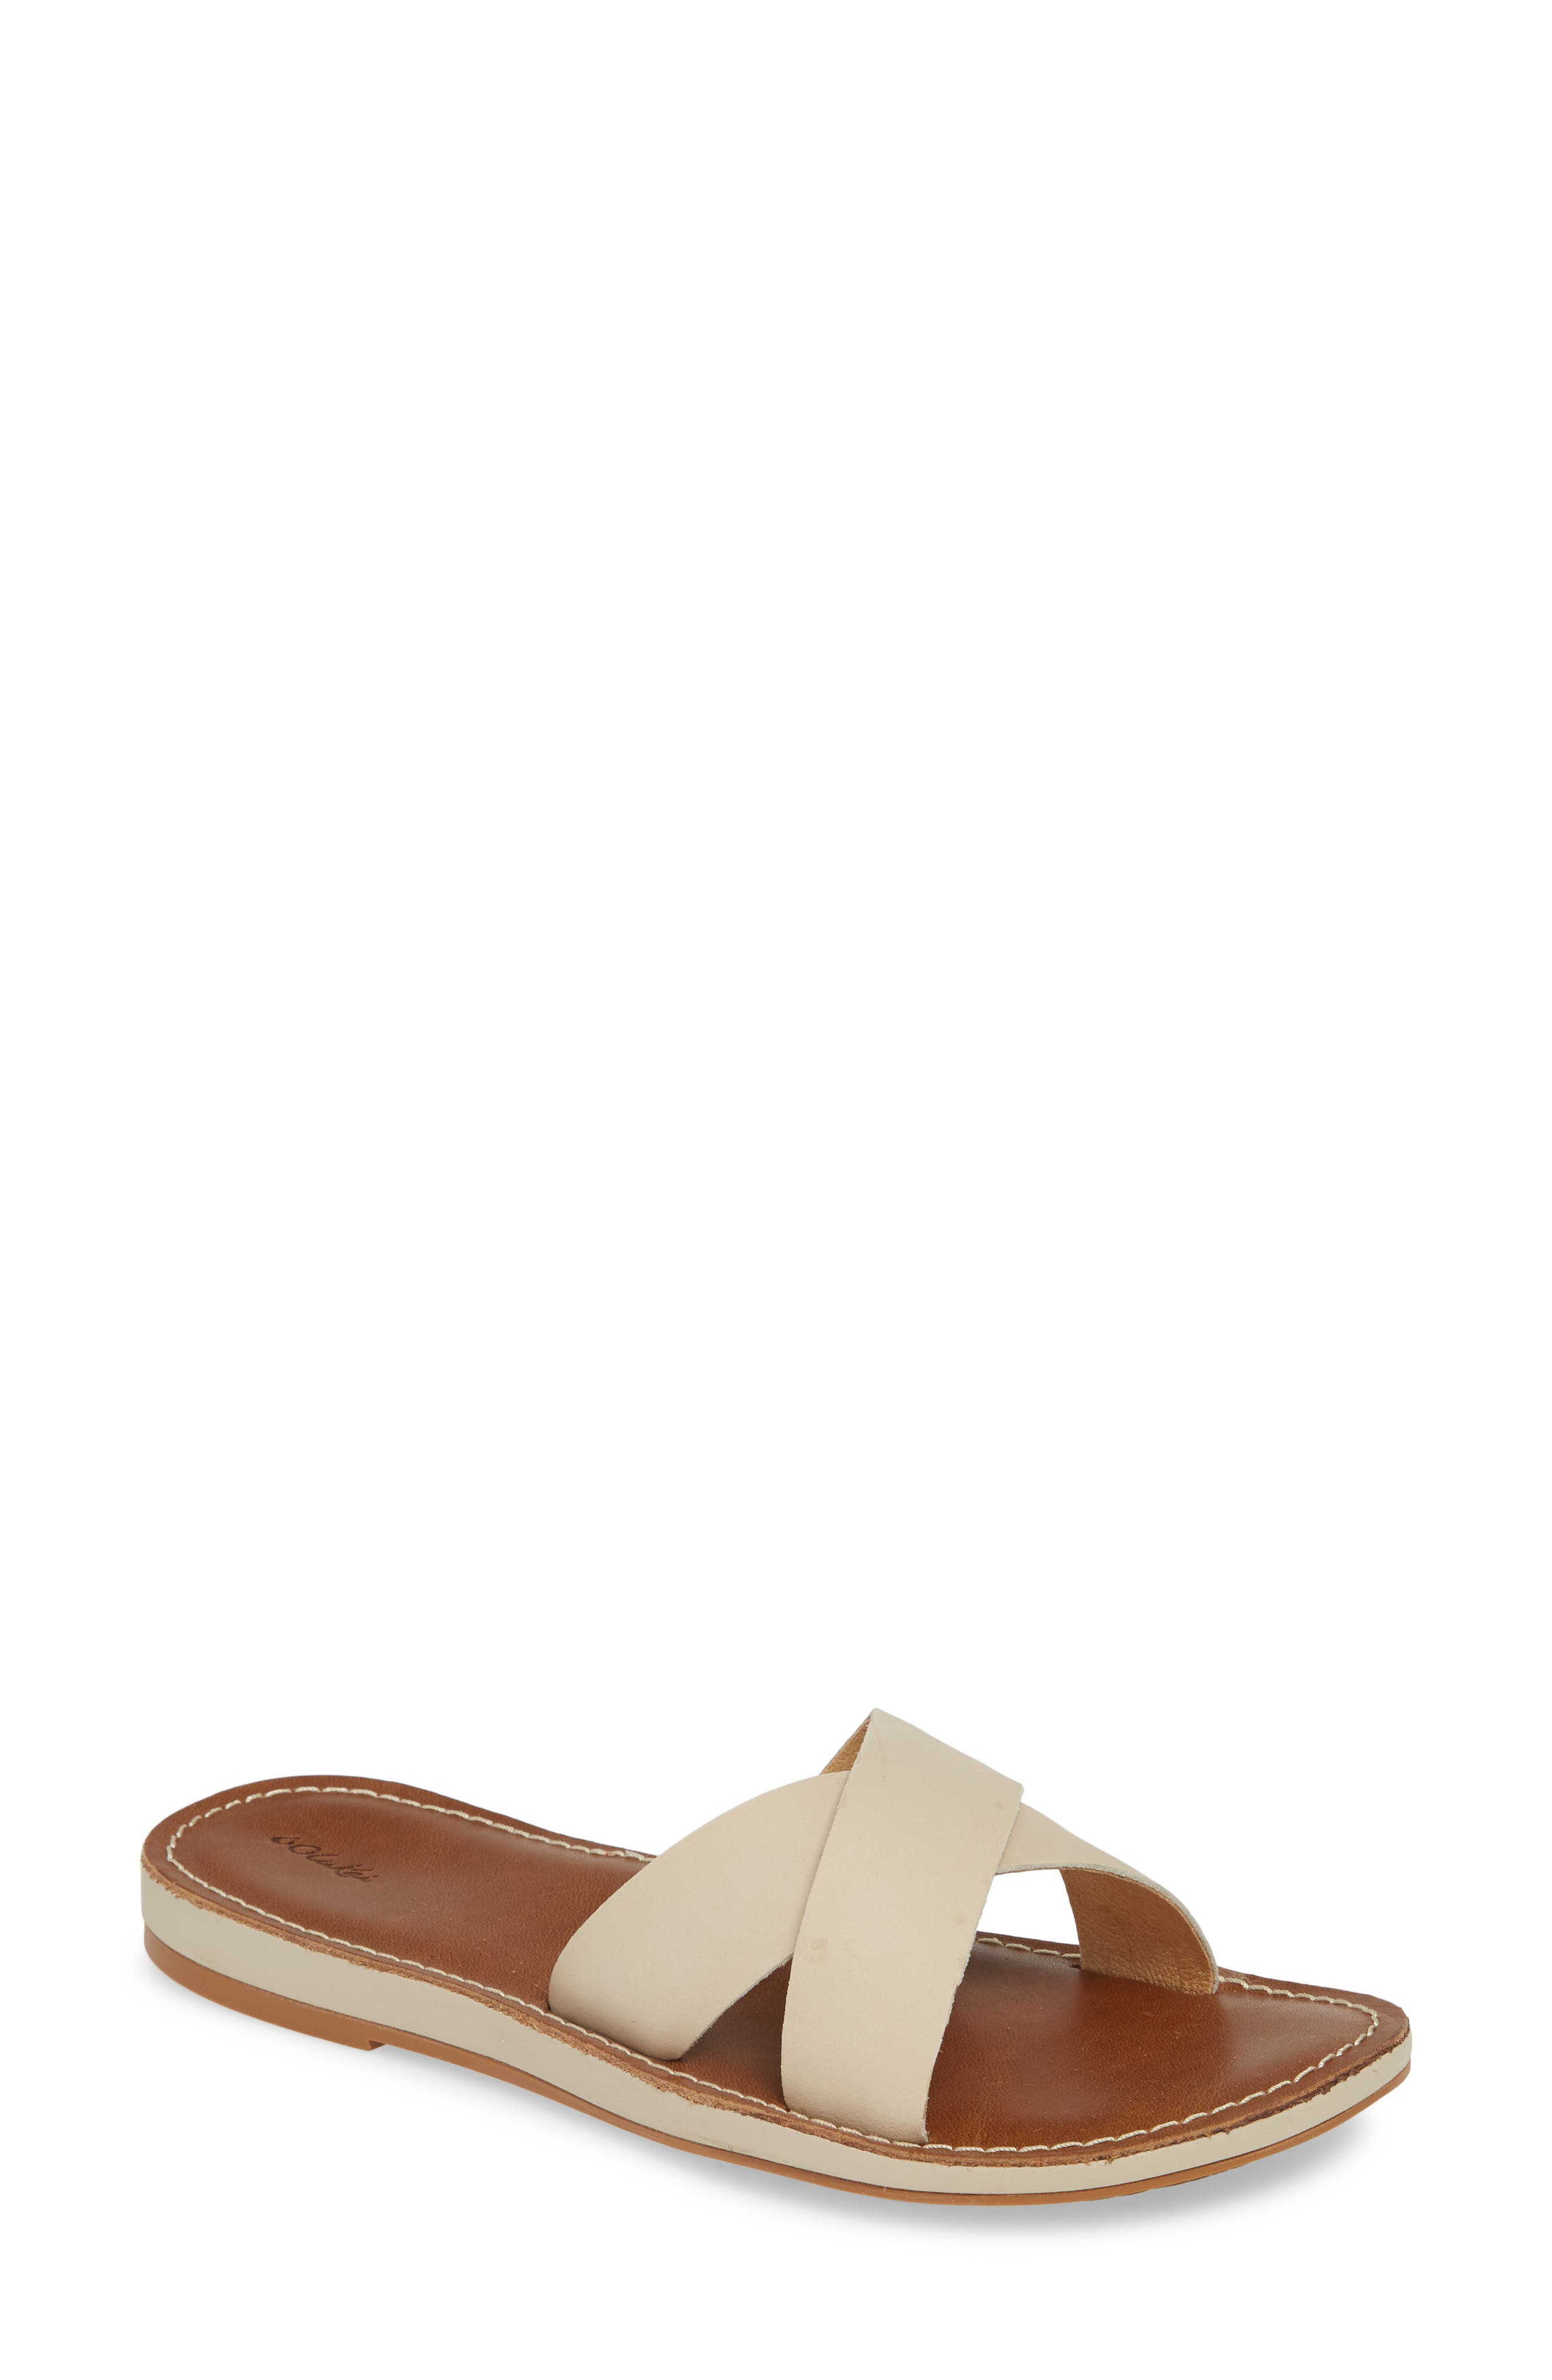 Soft leather straps crisscross atop an easygoing slide crafted with an anatomical footbed and textured sole. Style Name: Olukai Ke\\\'A Slide Sandal (Women). Style Number: 5792988. Available in stores.